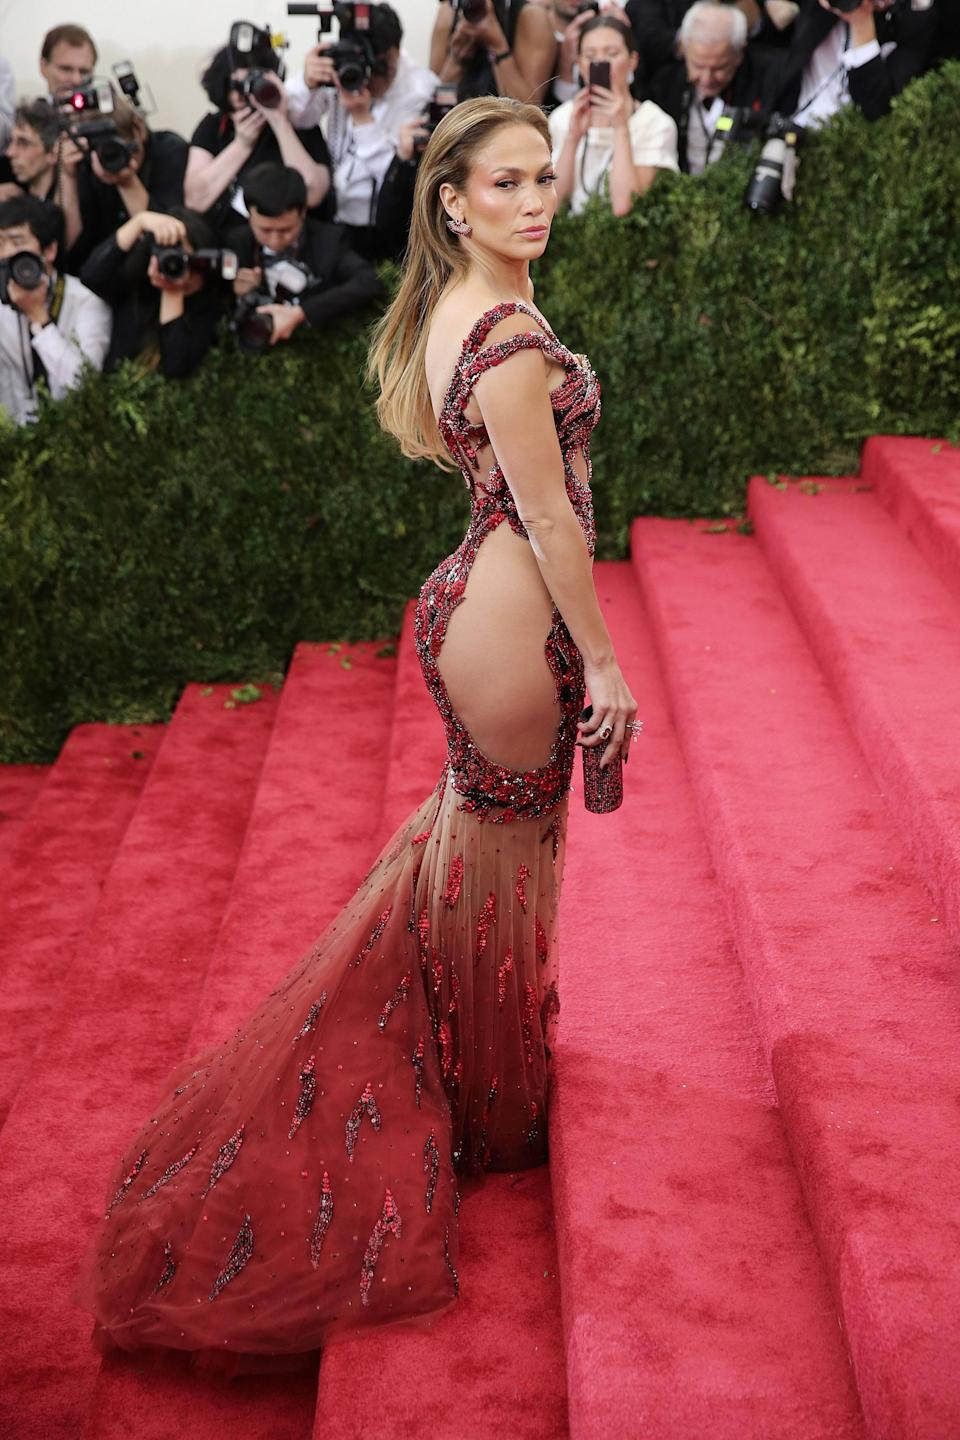 <p>Going back to her Versace roots, J.Lo lit up the red carpet at Cannes in this sheer, red gown that strategically covered all of the right places. [Photo: Getty] </p>